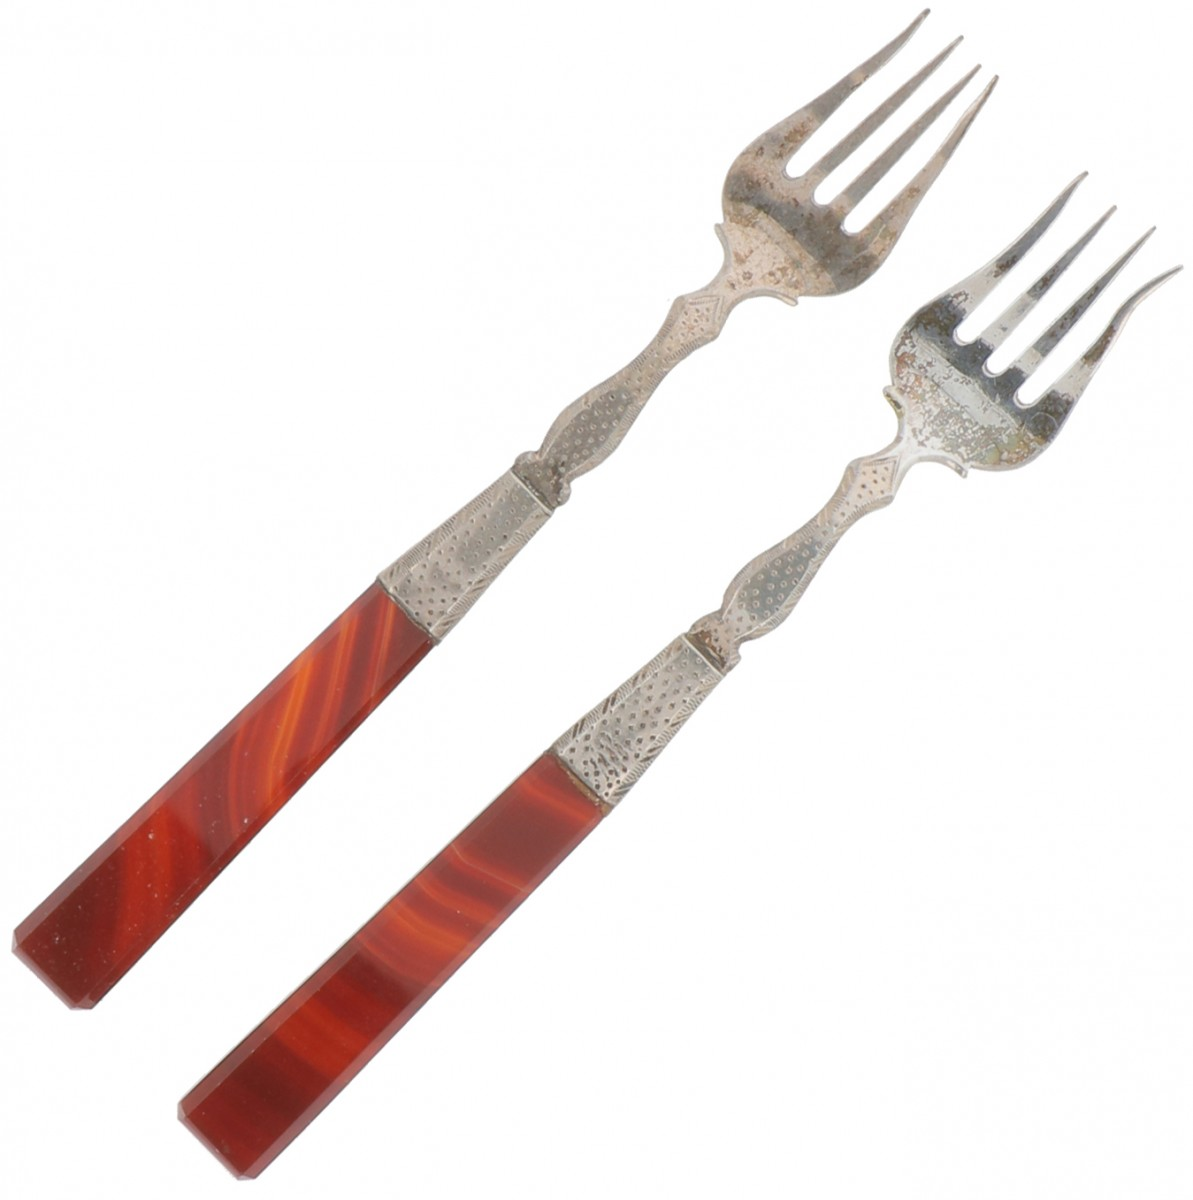 (2) piece set of silver meat forks.